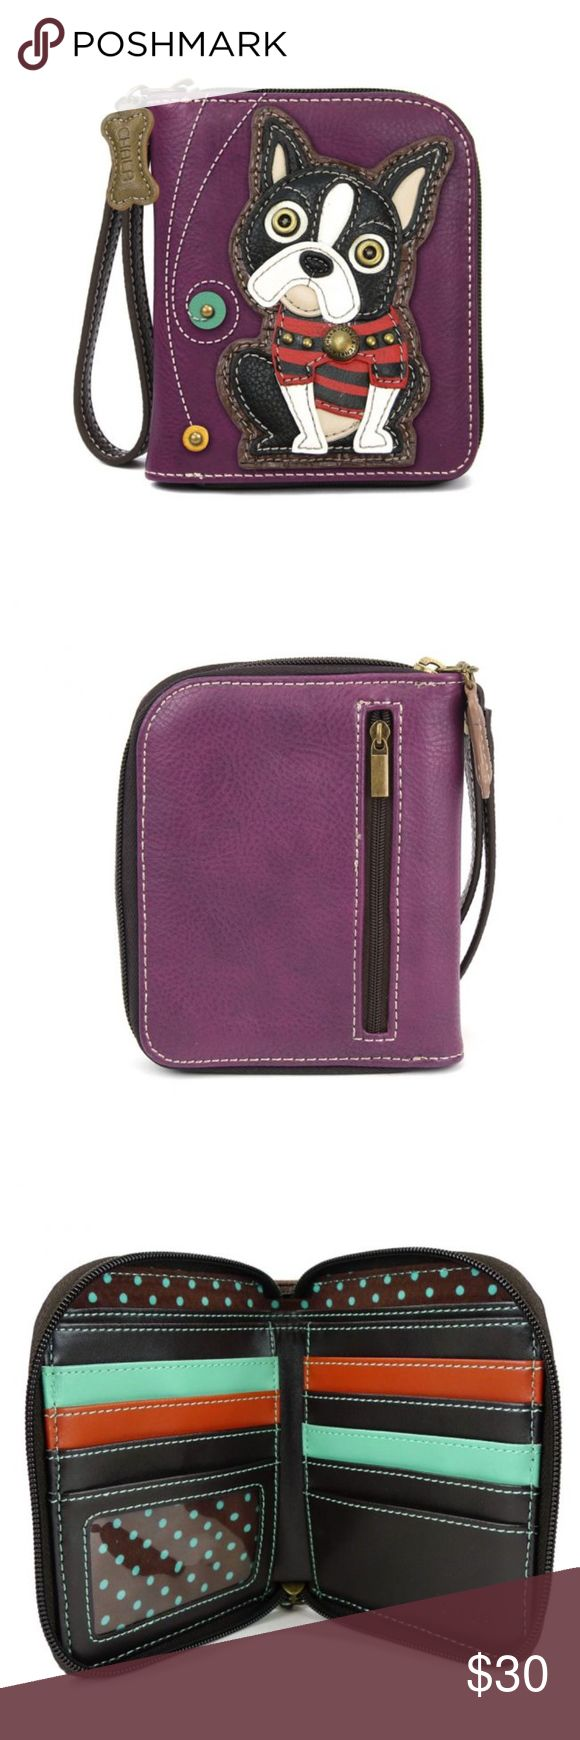 """NWT DOG Boston Terrier - Zip Around Wallet DOG Boston Terrier - Zip Around Wallet  Stylish, Fun, Functional  The front is adorned with a cute Boston Terrier character! Comes with a bone zipper charm and zipper pull Lots of slots for your cards and cash One clear slot for Photo ID Back zipper pocket for coins!  Materials: Faux Leather Color: Purple Dimensions: 5"""" x 6"""" x 1""""  Designed in California Chala Bags Wallets"""